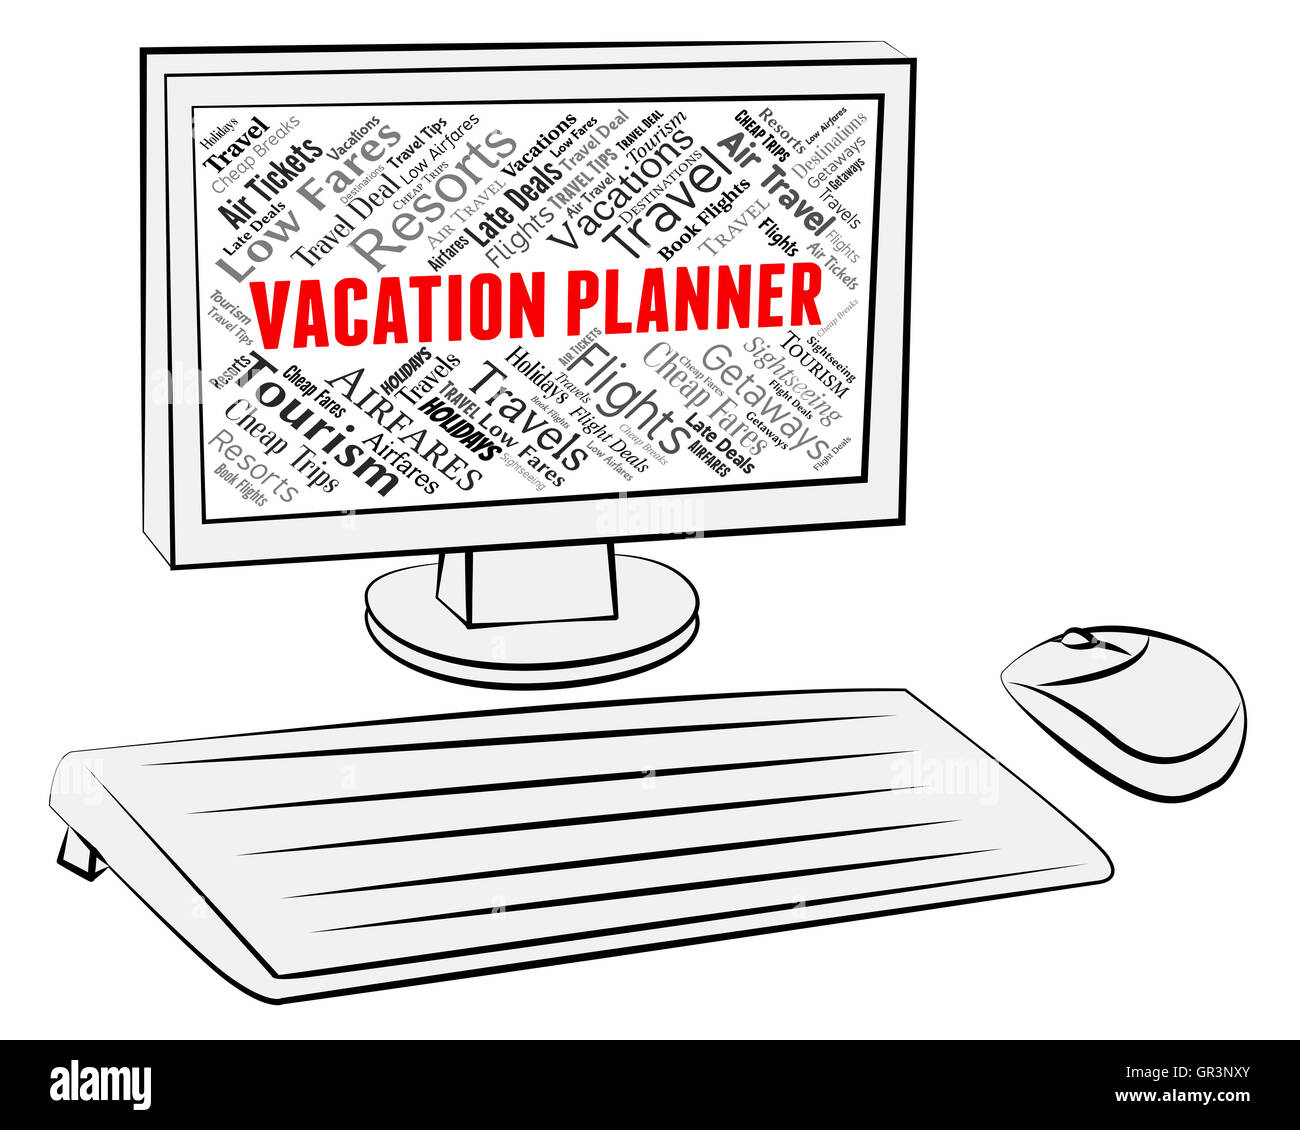 vacation planner meaning computers scheduler and vacational stock